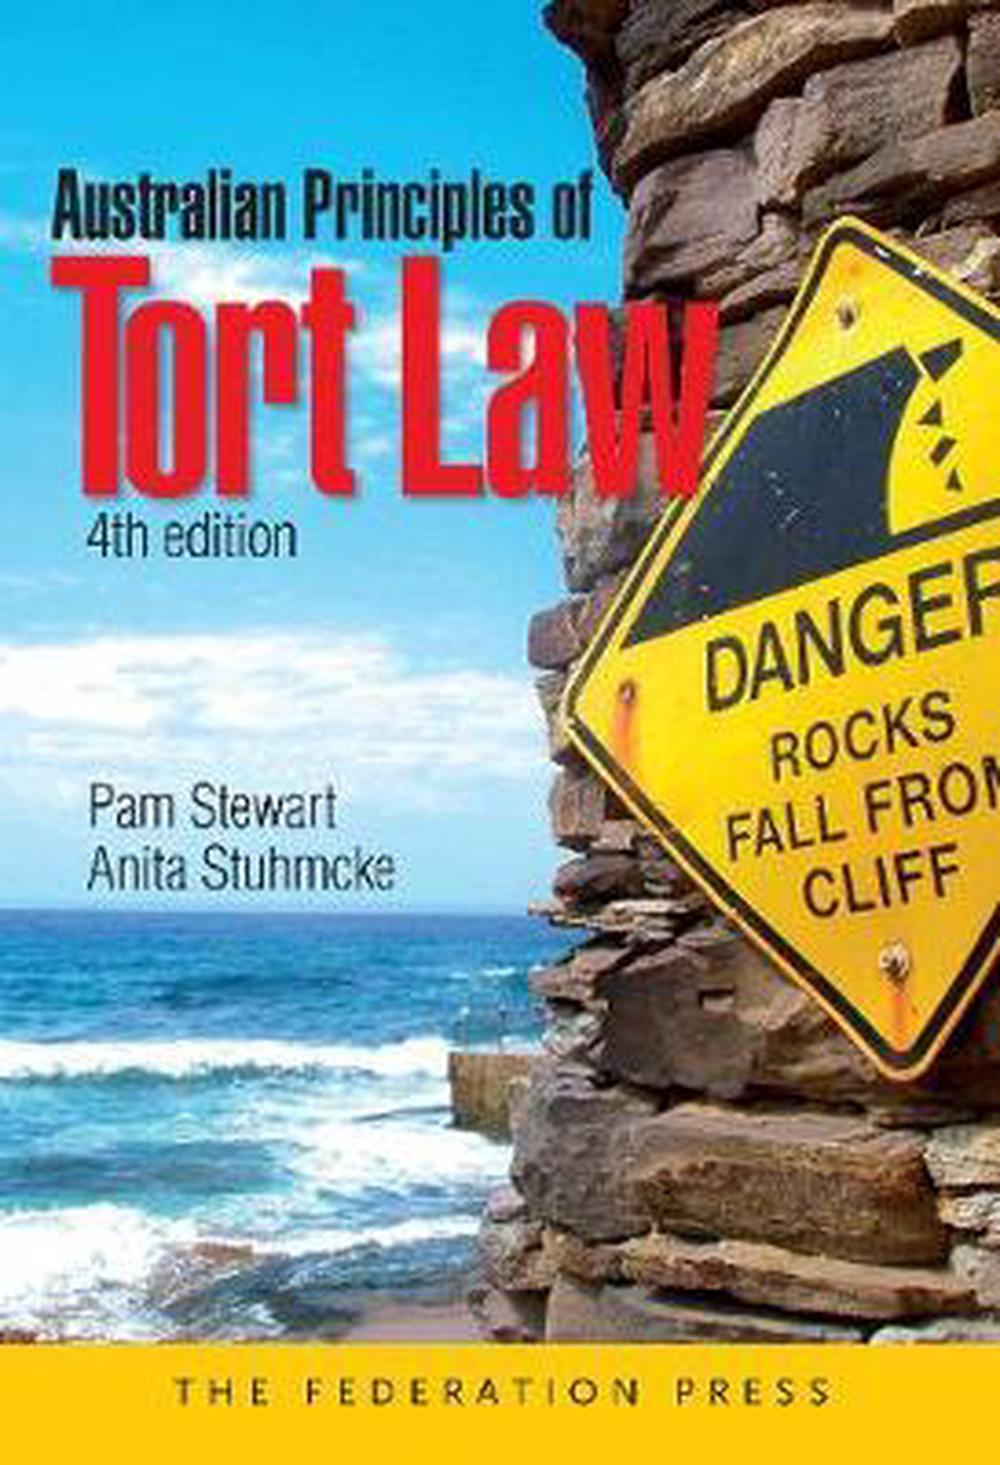 Australian Principles of Tort Law 4th Edition by Pam Stewart Paperback Book Free